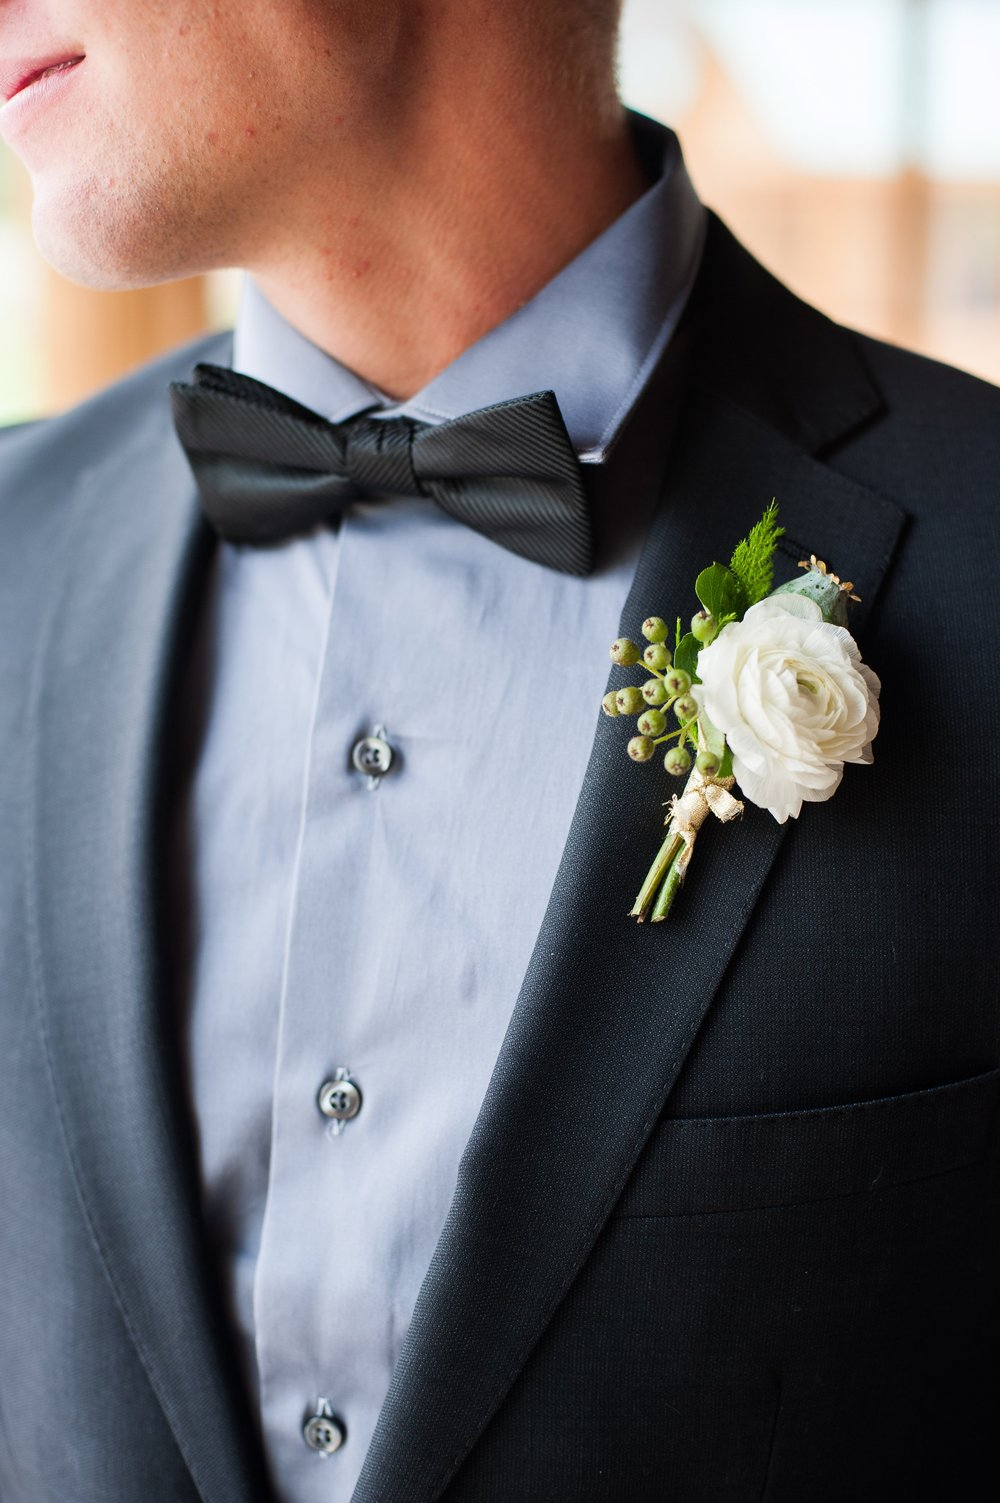 Flowers by Lace and Lilies, formal black tie wedding, ranunculus, poppy pod and fern boutonniere. Bow tie.